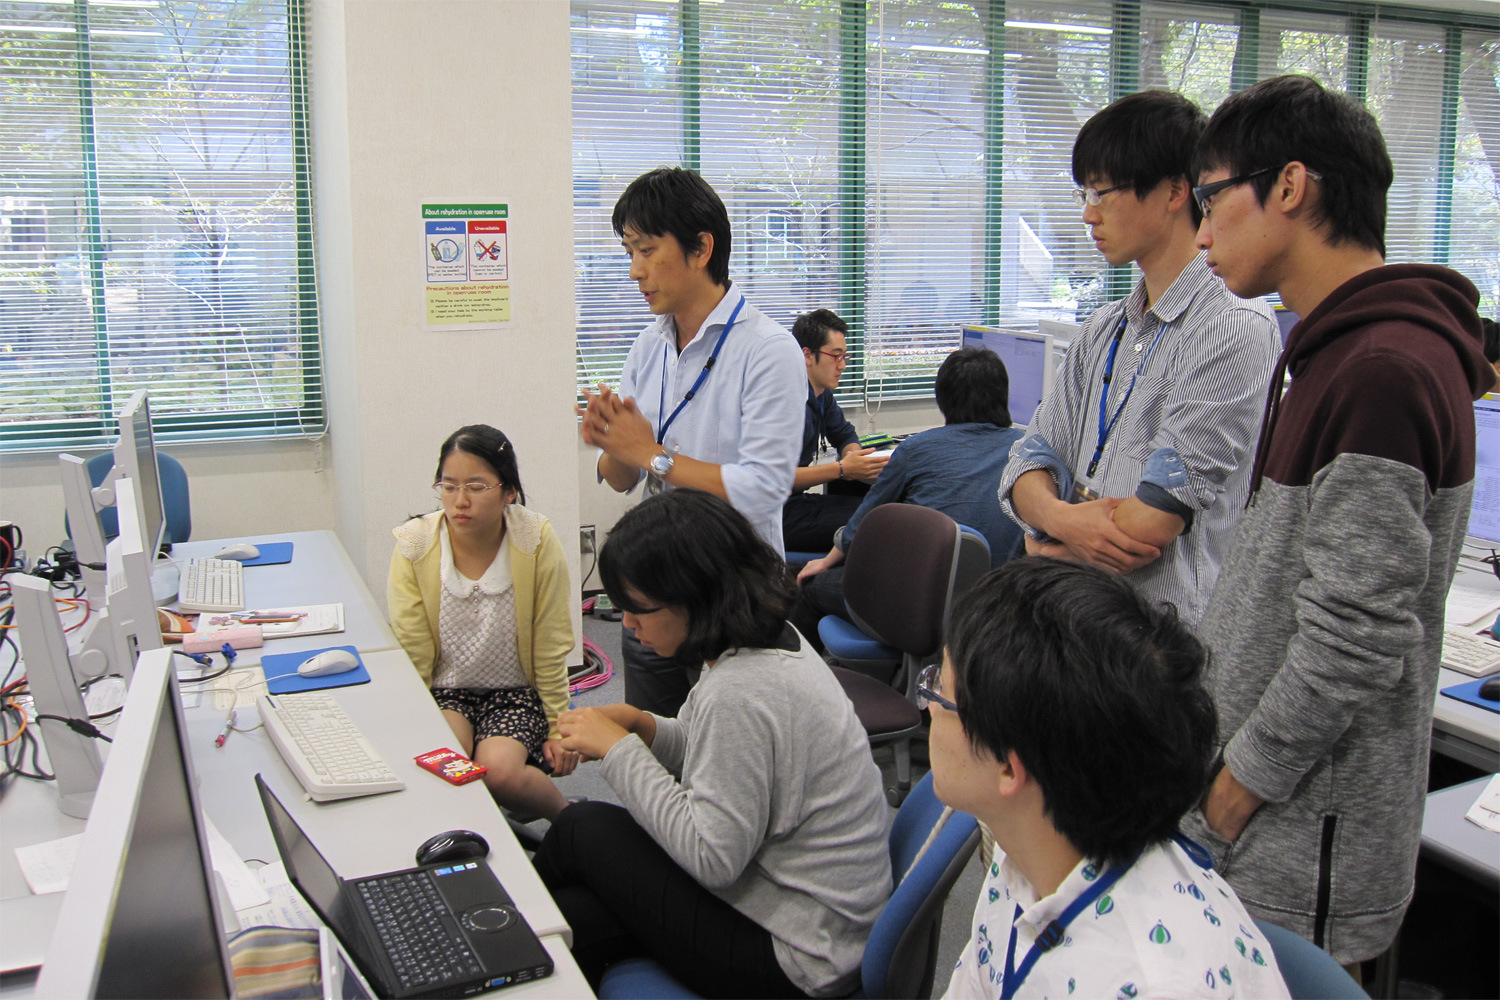 Data analysis workshop for undergraduate students, held in Mitaka Campus of the National Astronomical Observatory of Japan in September 2015. Image credit: NAOJ.